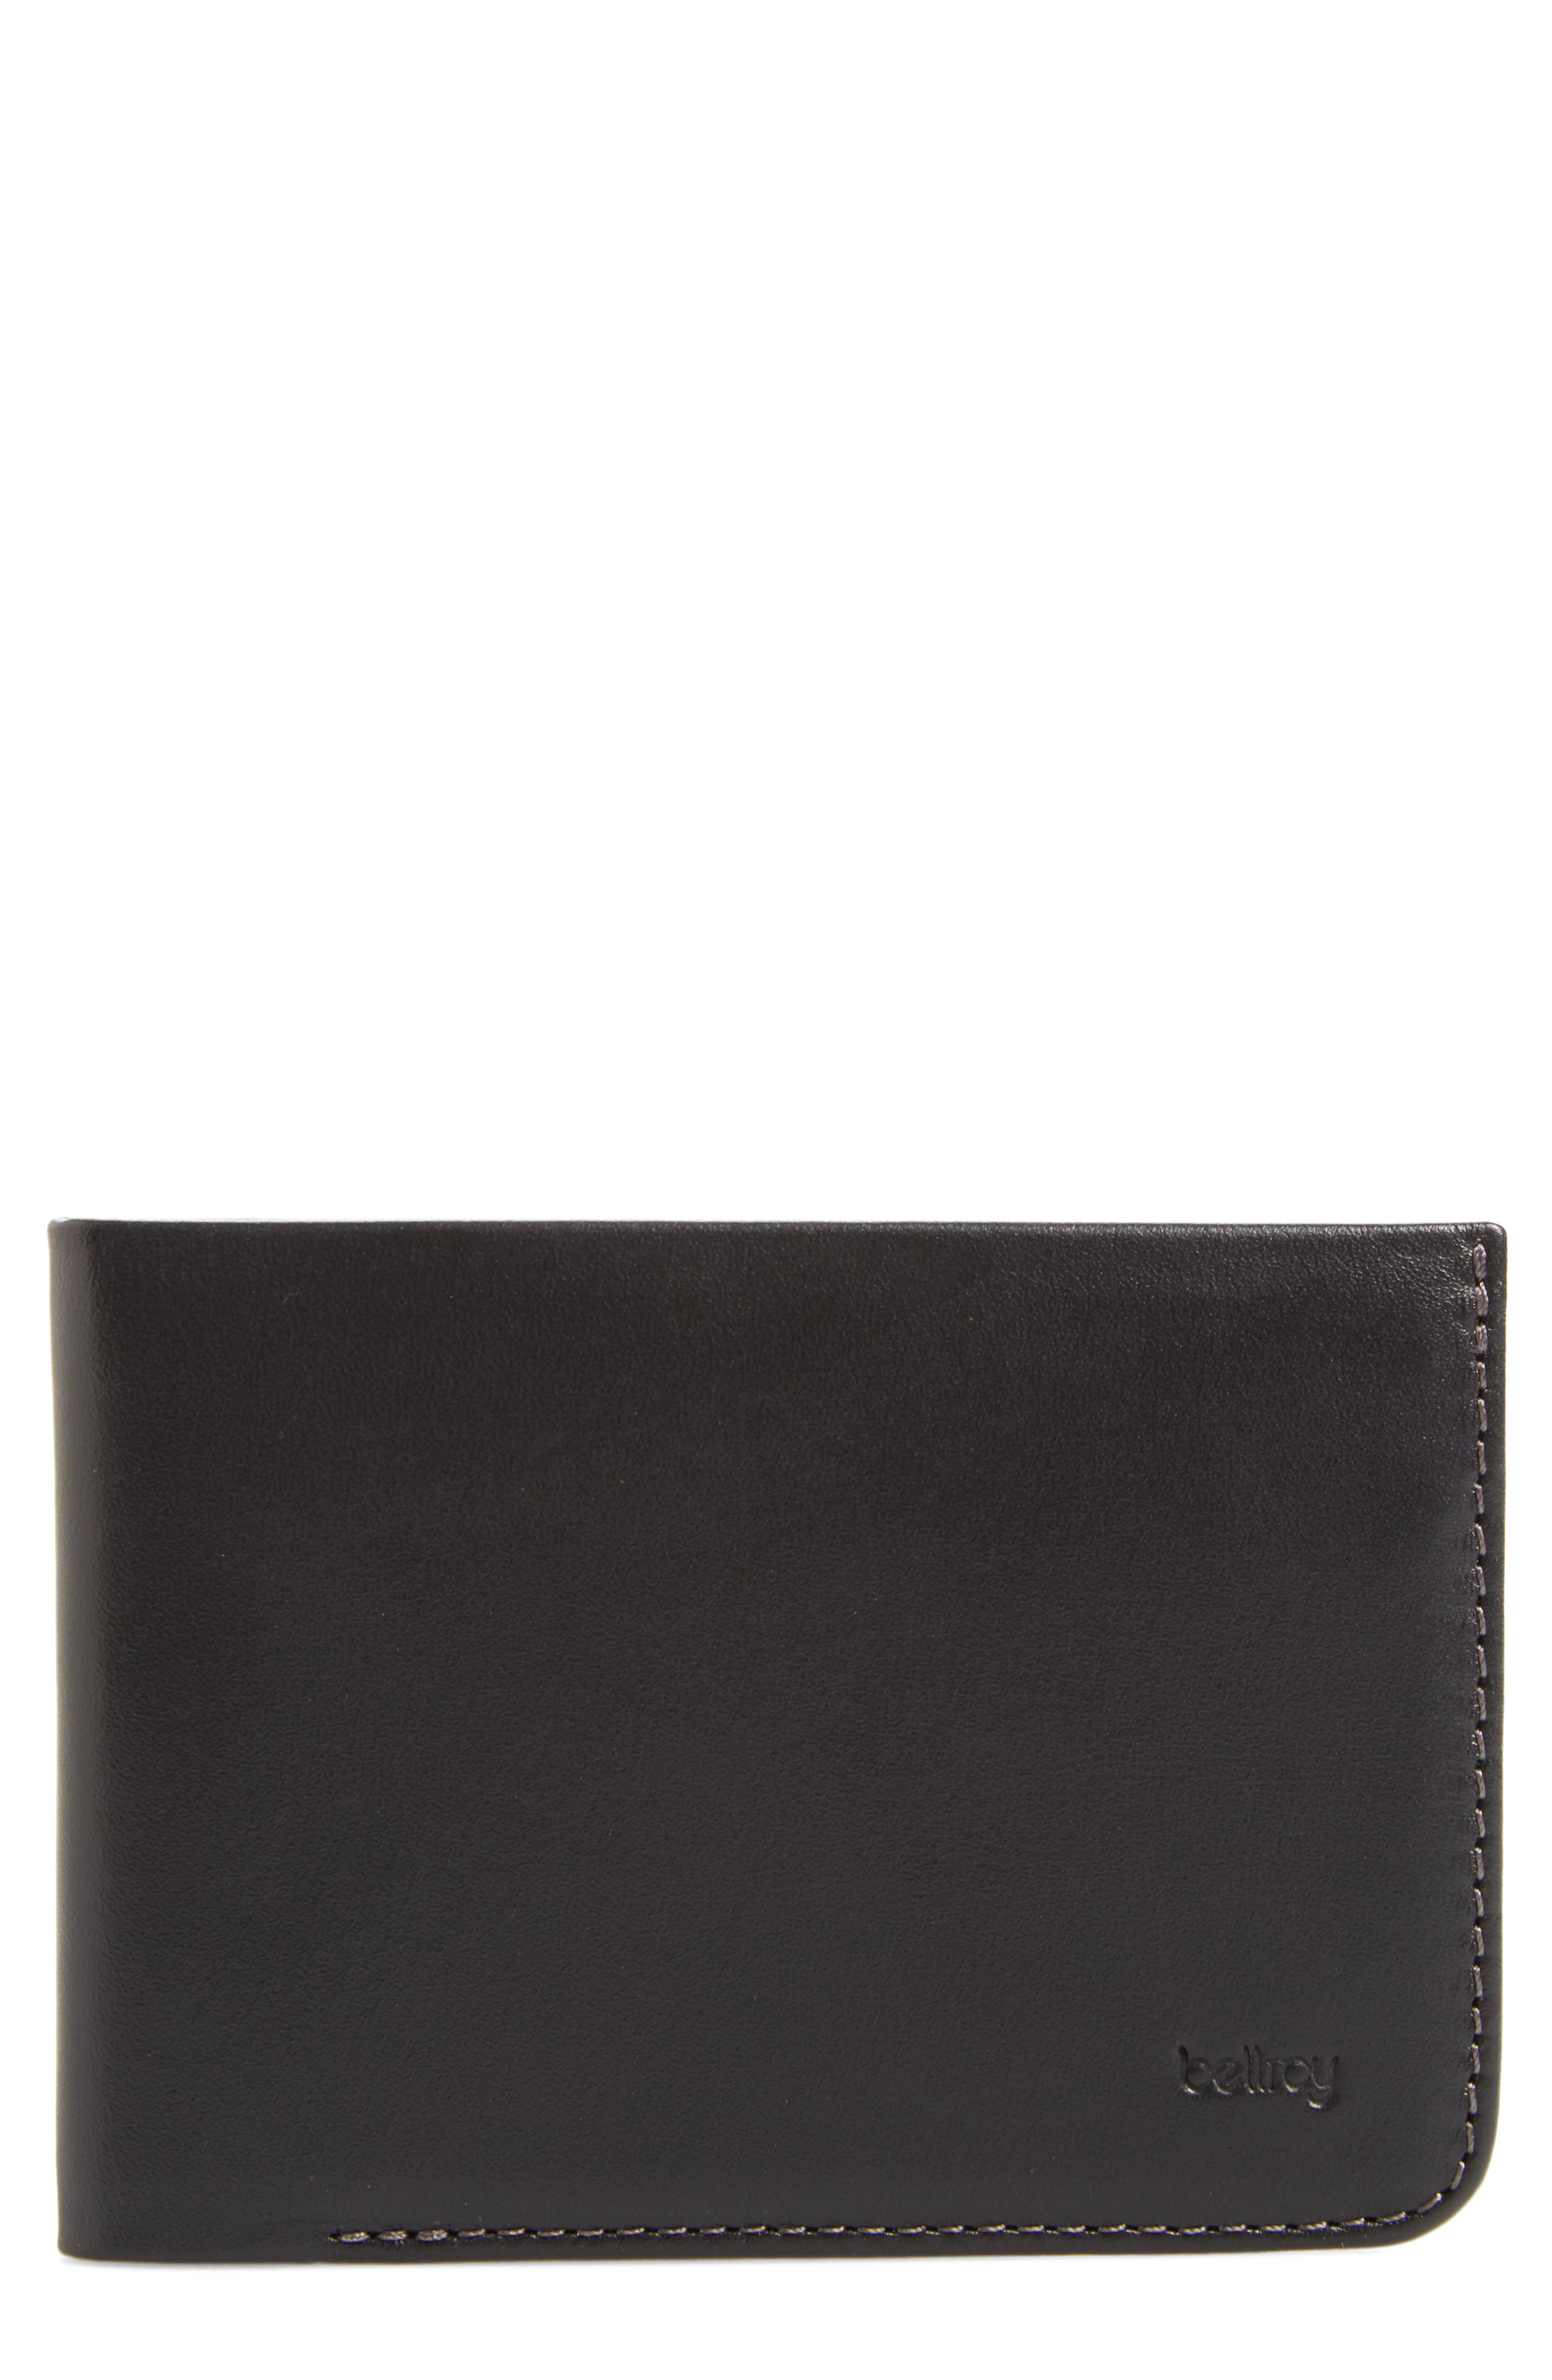 Low Down Leather Wallet,                             Main thumbnail 1, color,                             001